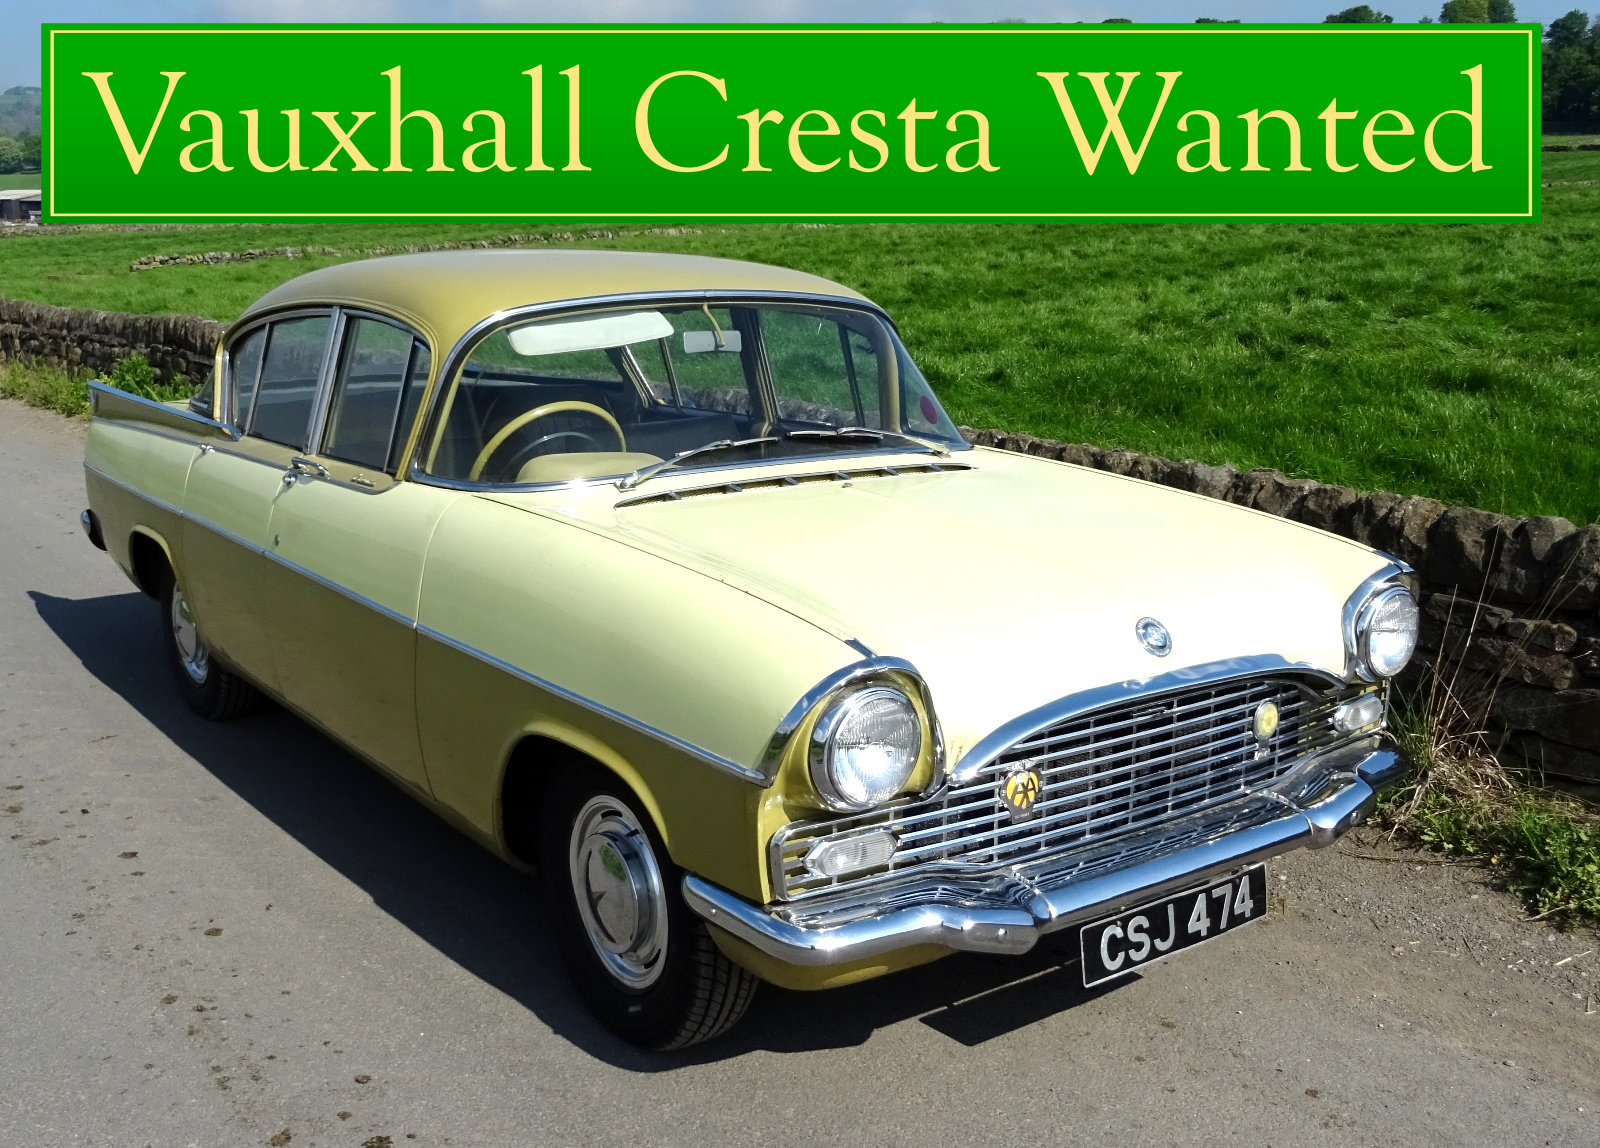 VAUXHALL CRESTA WANTED, CLASSIC CARS WANTED INSTANT PAYMENT Wanted (picture 1 of 6)